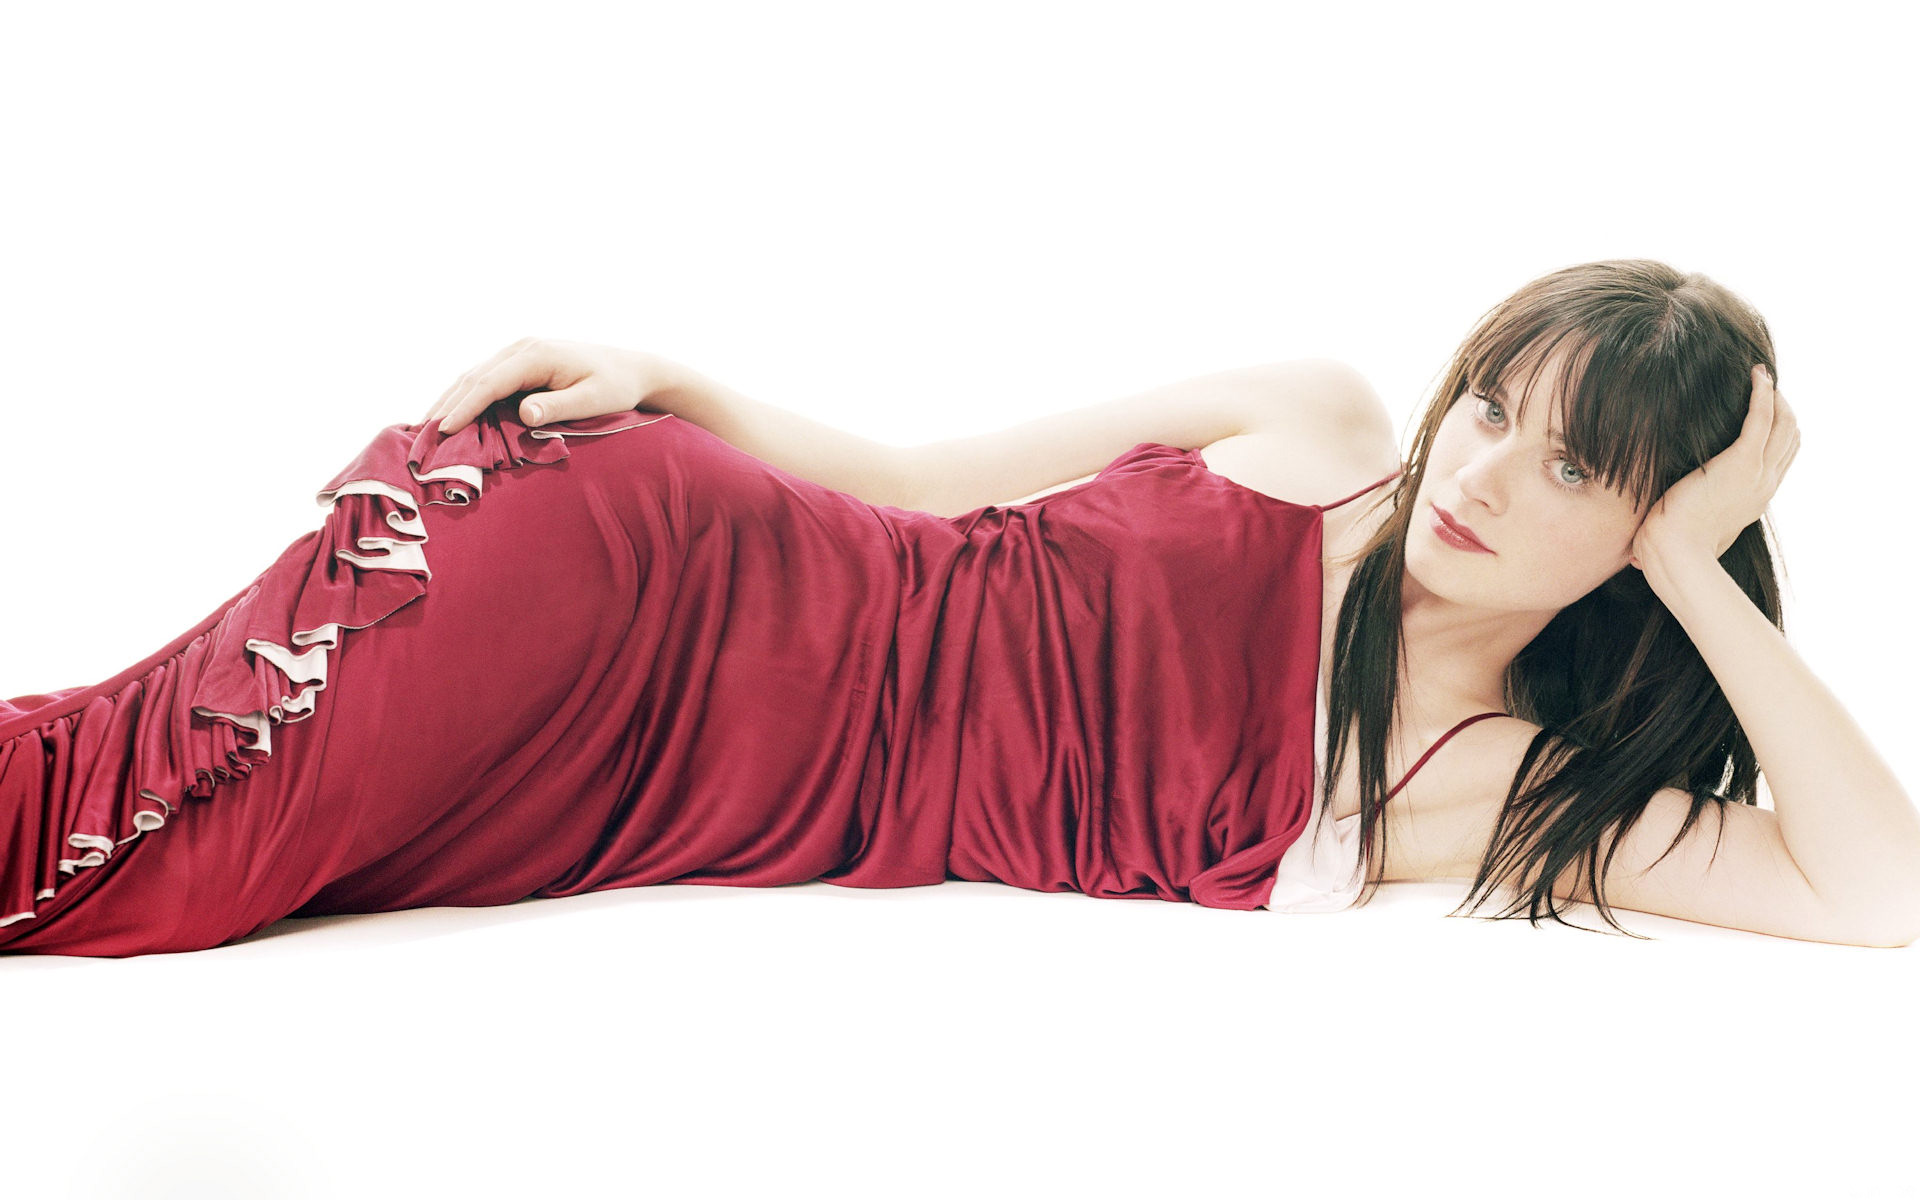 Zooey Deschanel Widescreen 287.58 Kb